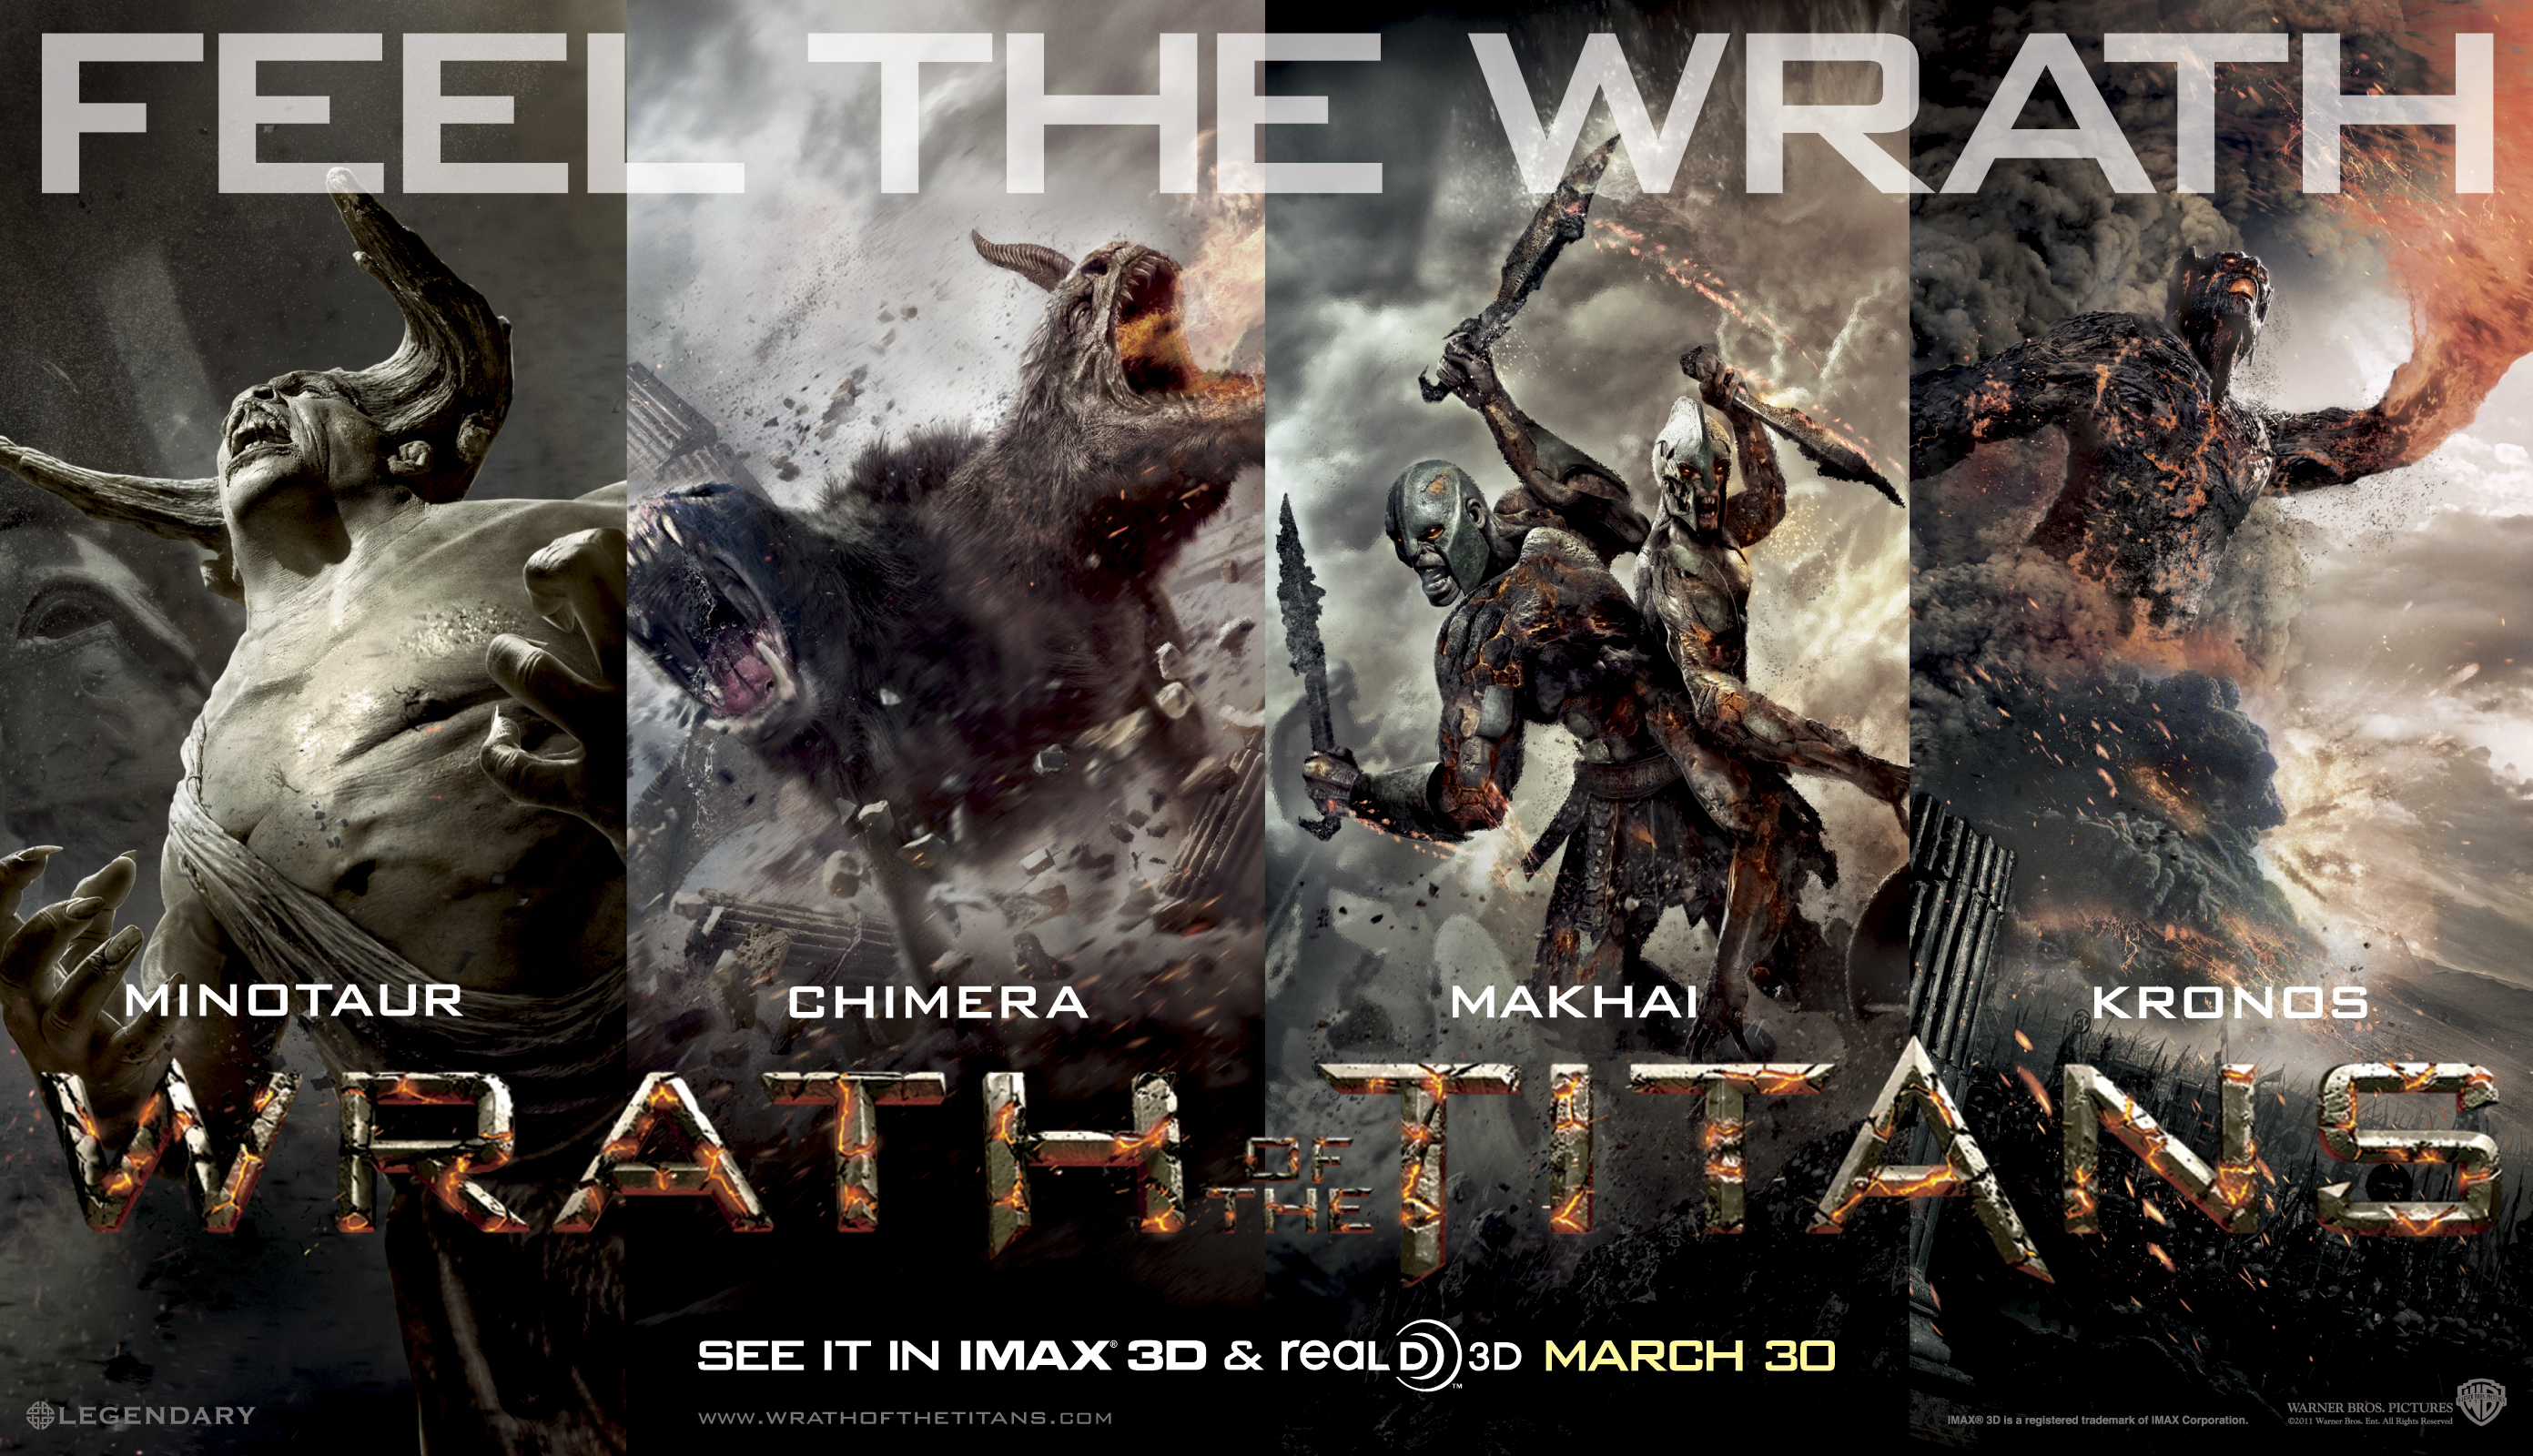 http://collider.com/wp-content/uploads/wrath-of-the-titans-banner-poster-2.jpg